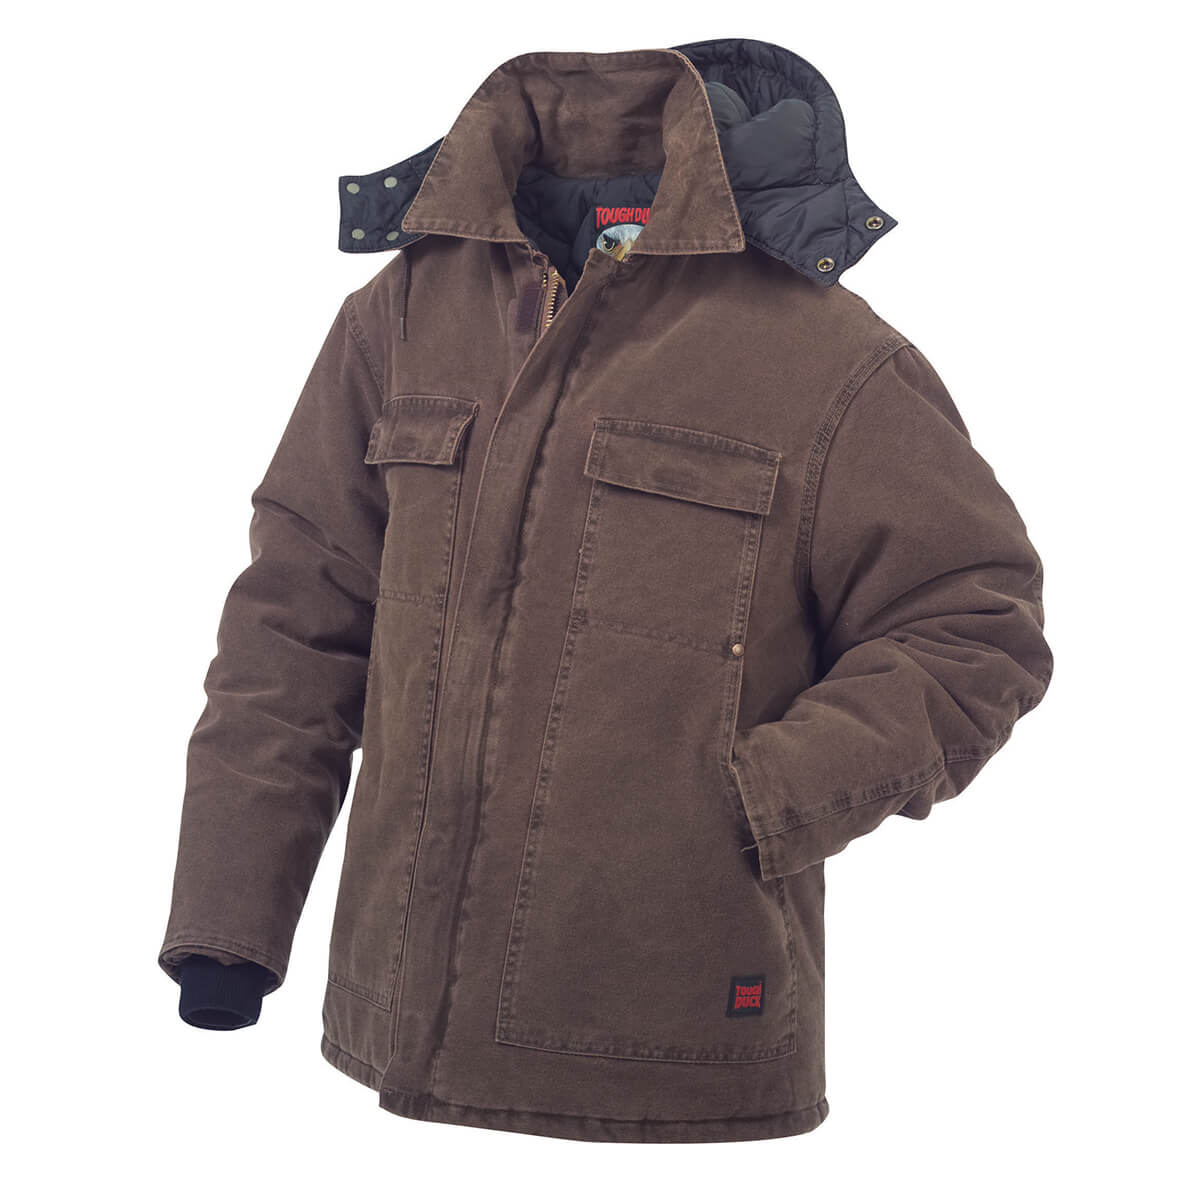 Tough Duck Parka